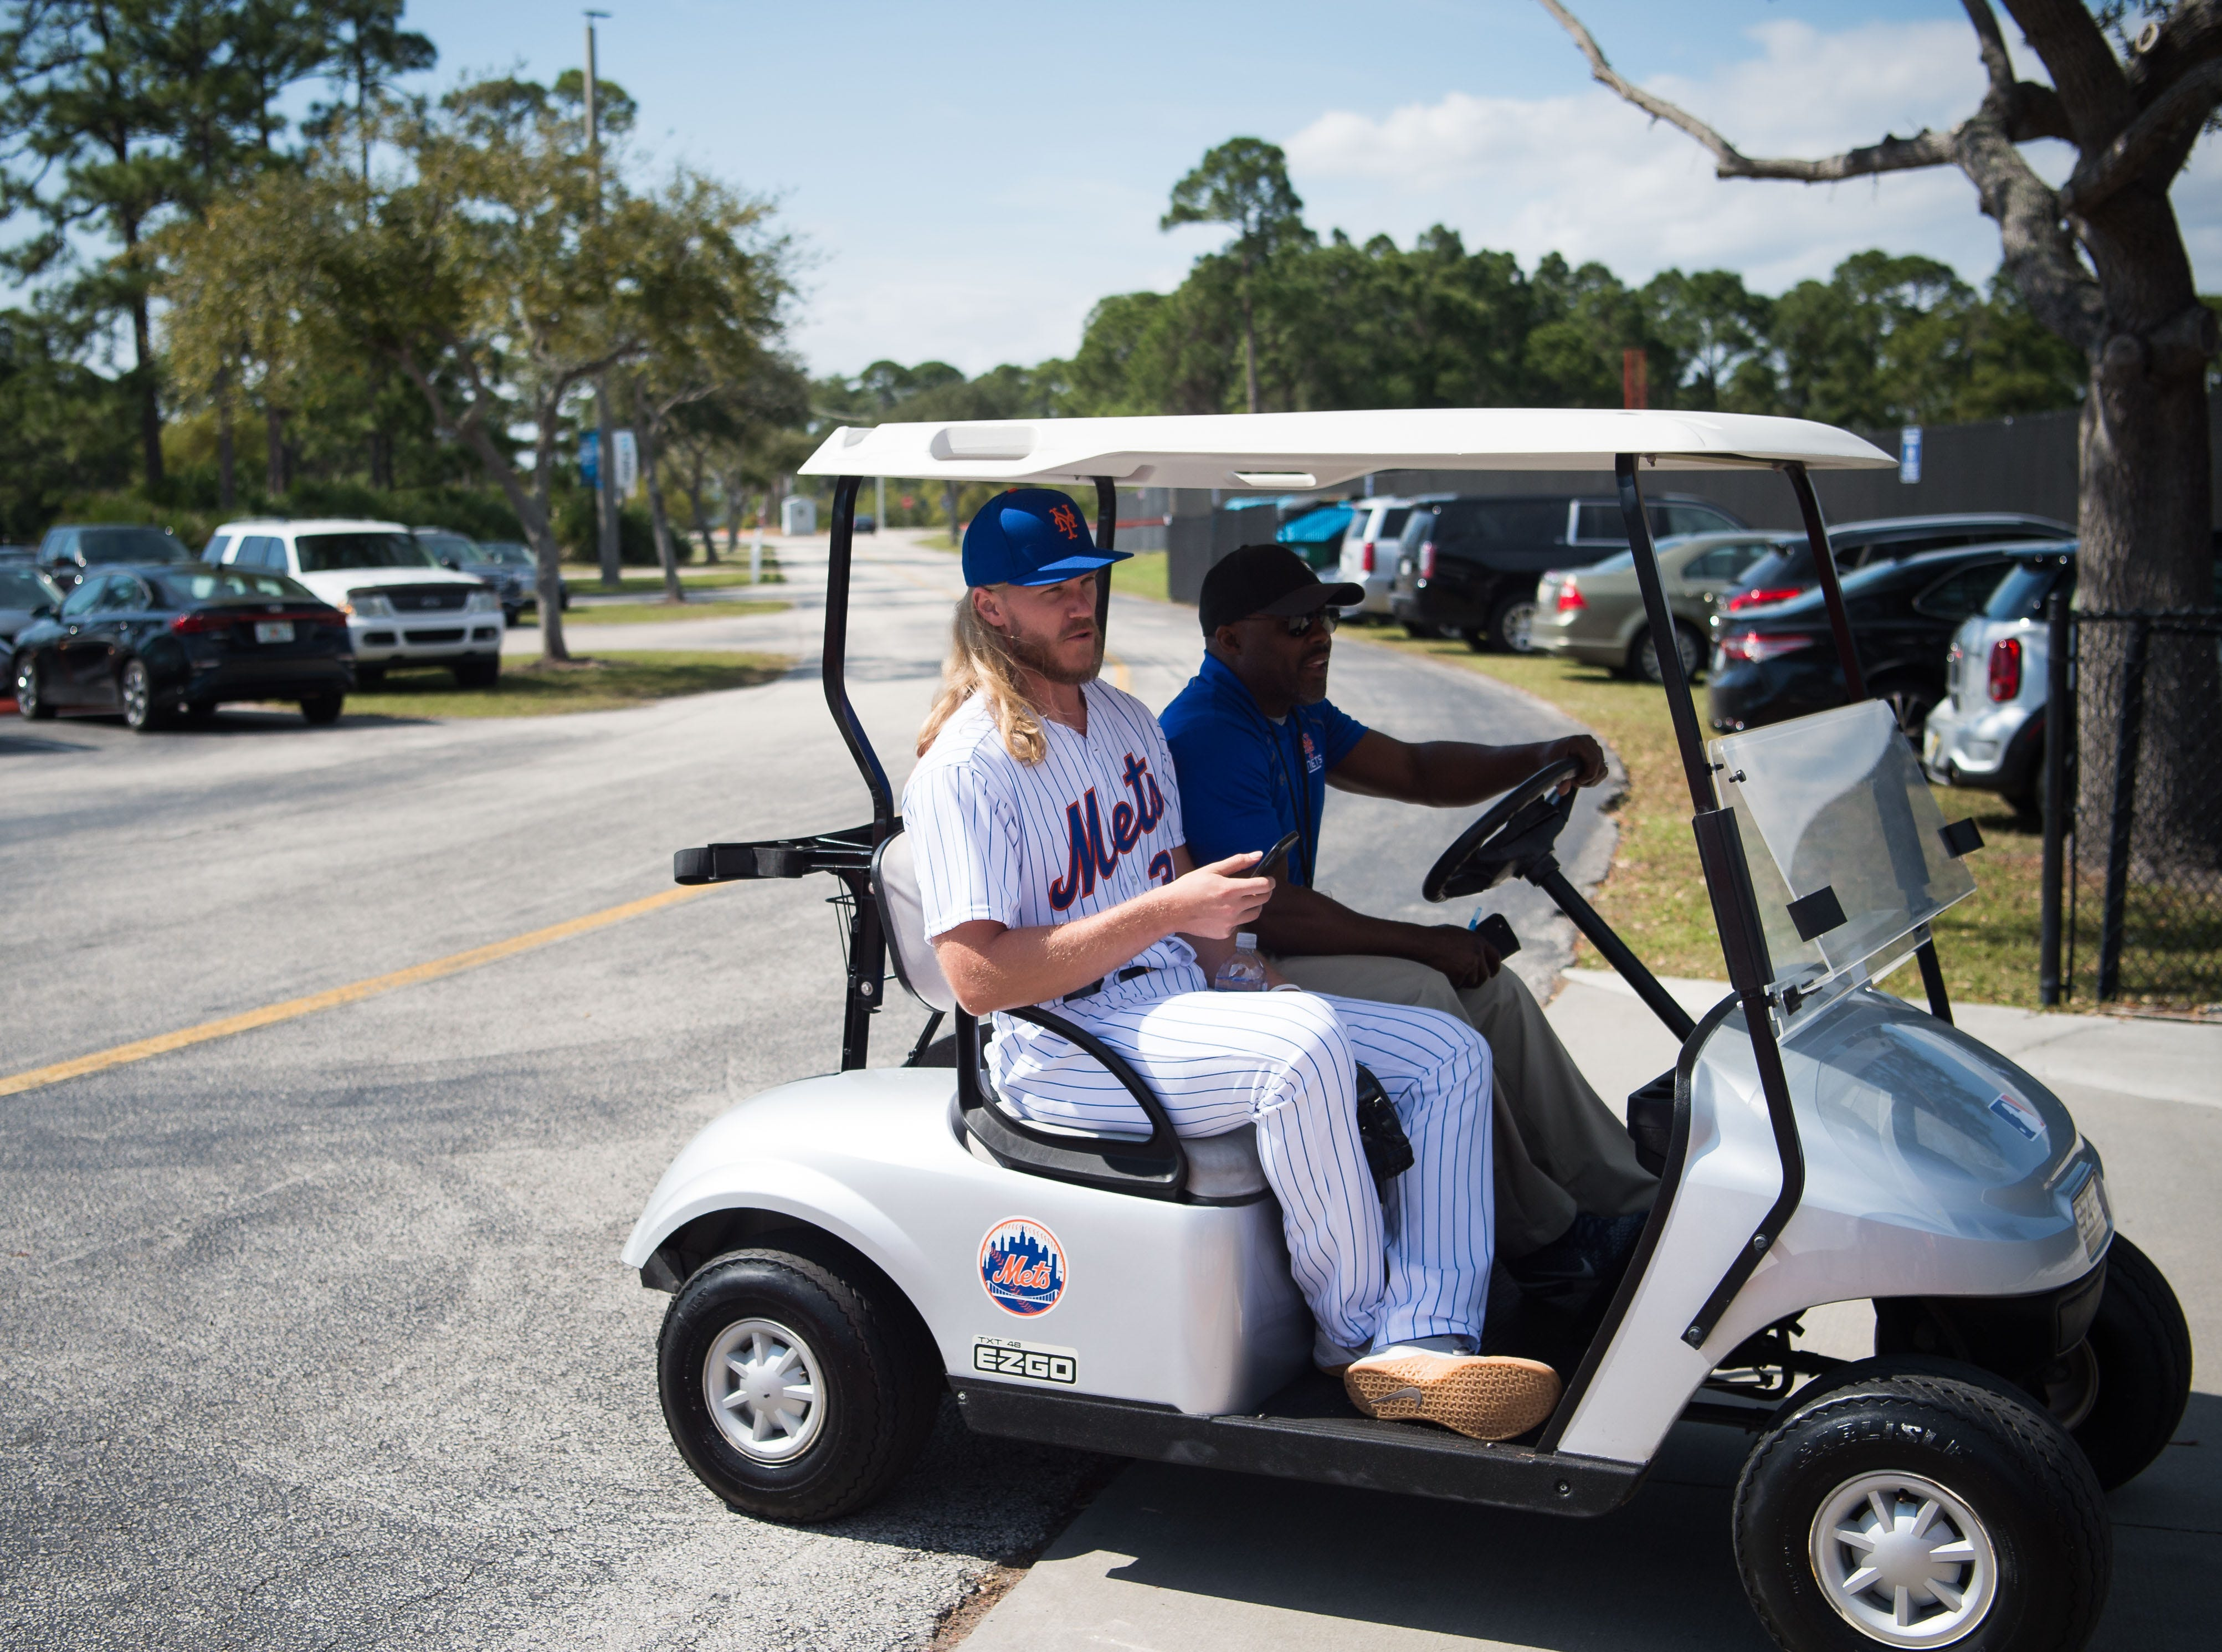 New York Mets pitcher Noah Syndergaard approaches fans trying to get autographs of players attending spring training Saturday, Feb. 16, 2019, at First Data Field in Port St. Lucie.